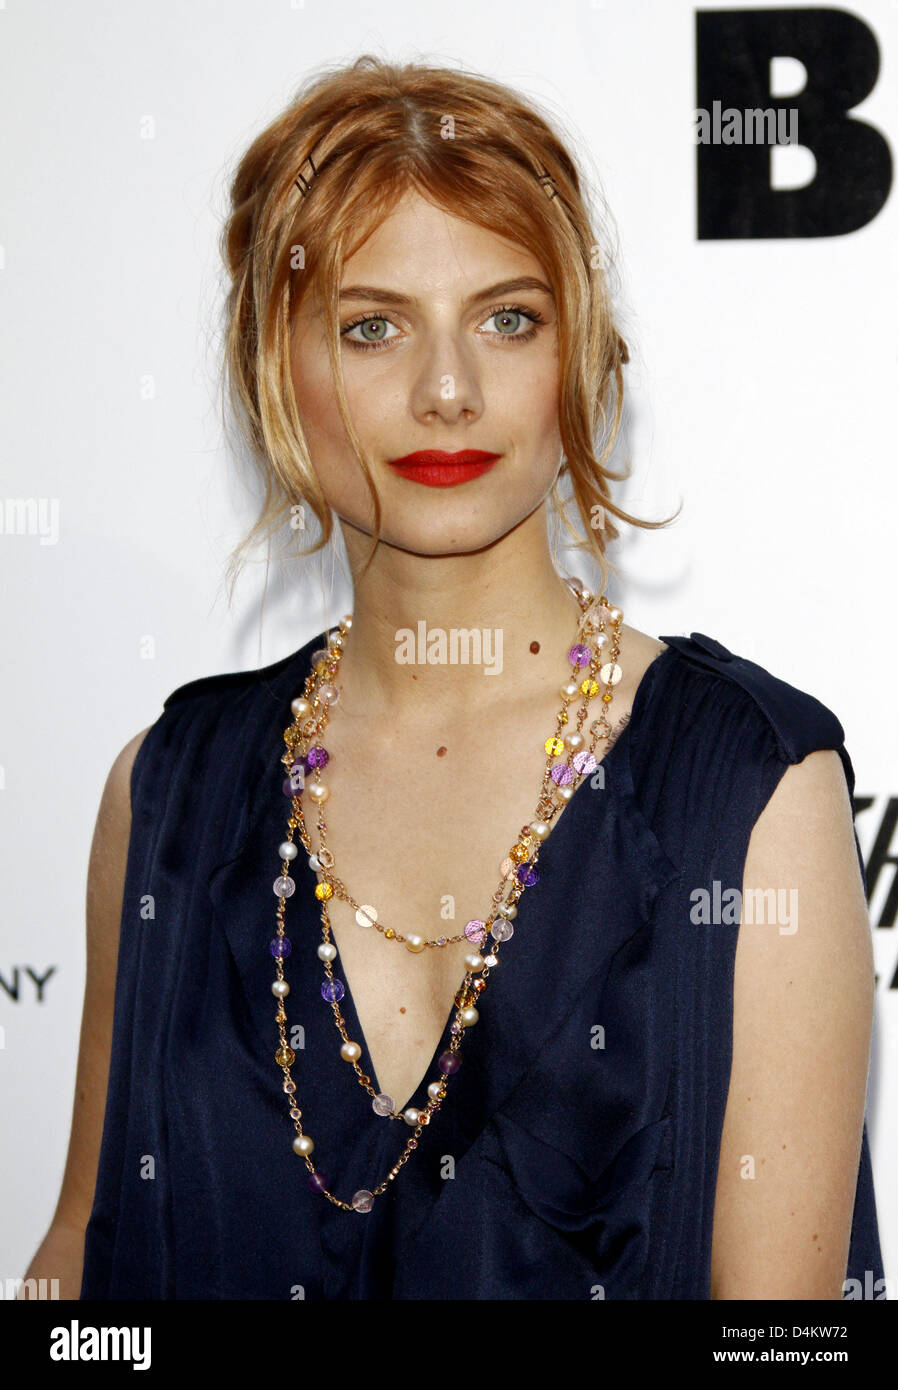 French actress Melanie Laurent attends the amfAR Cinema ...